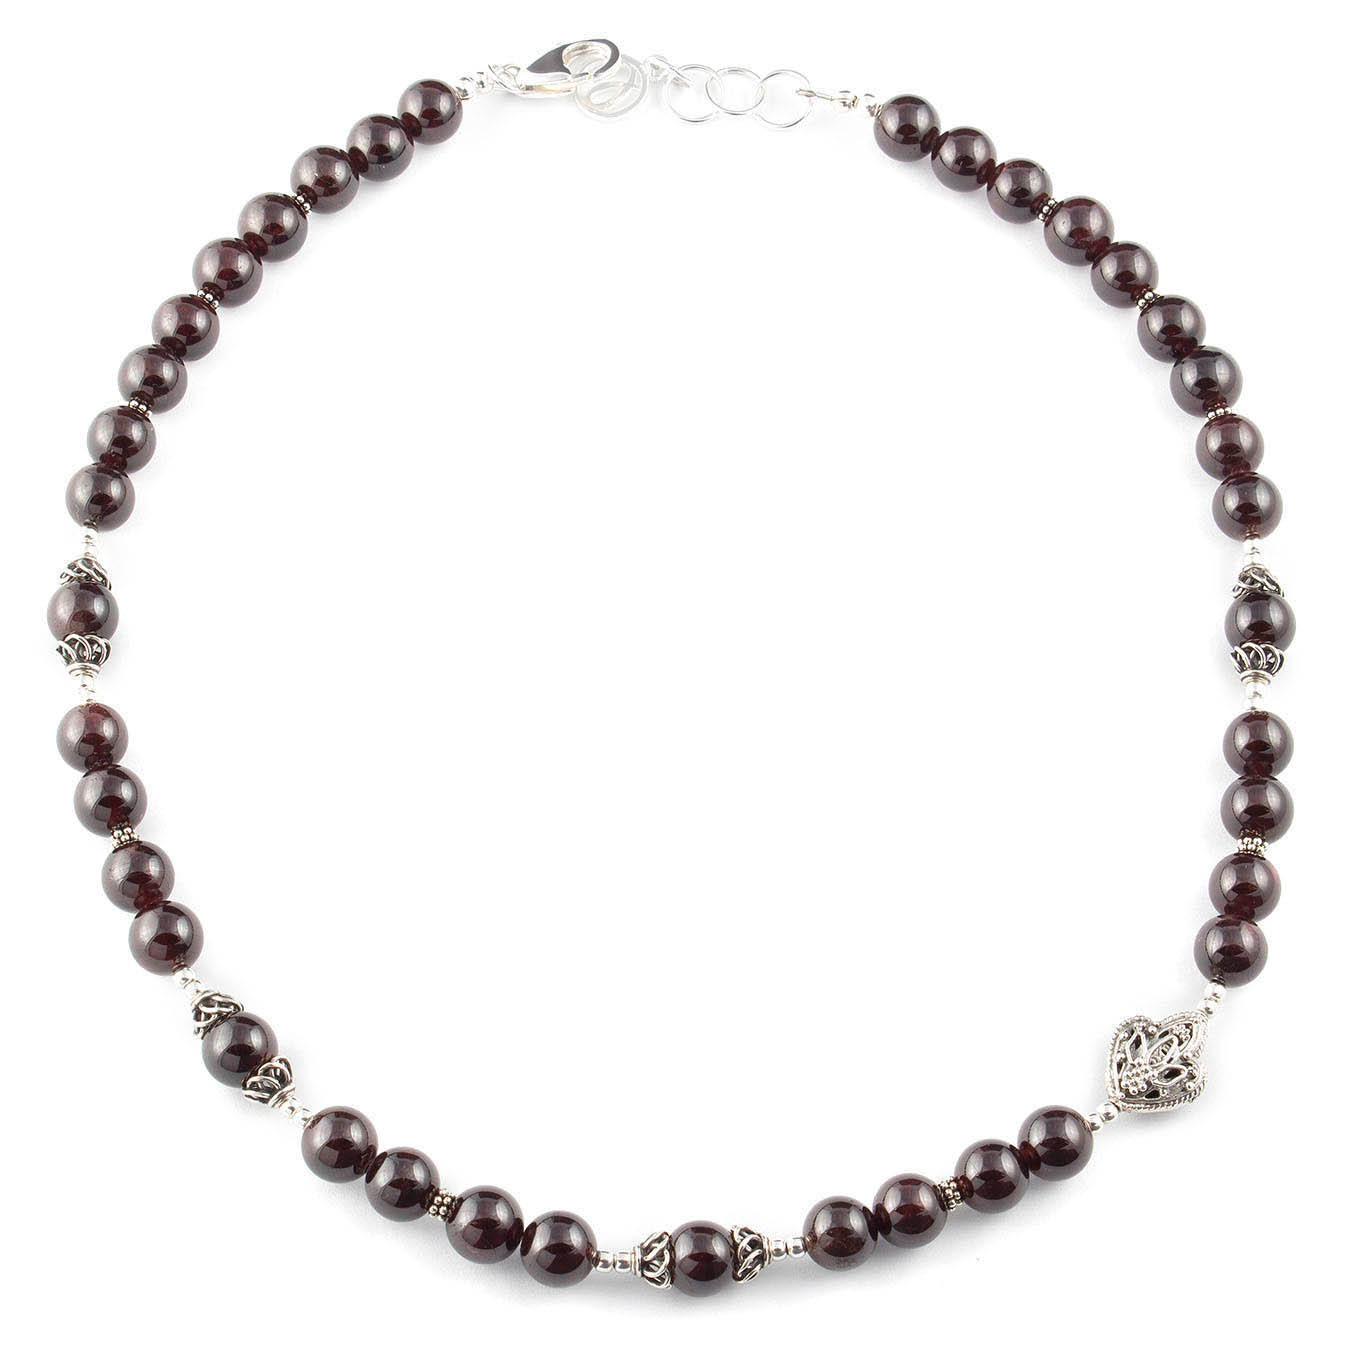 January birthstone necklace set made with garnet and bali silver